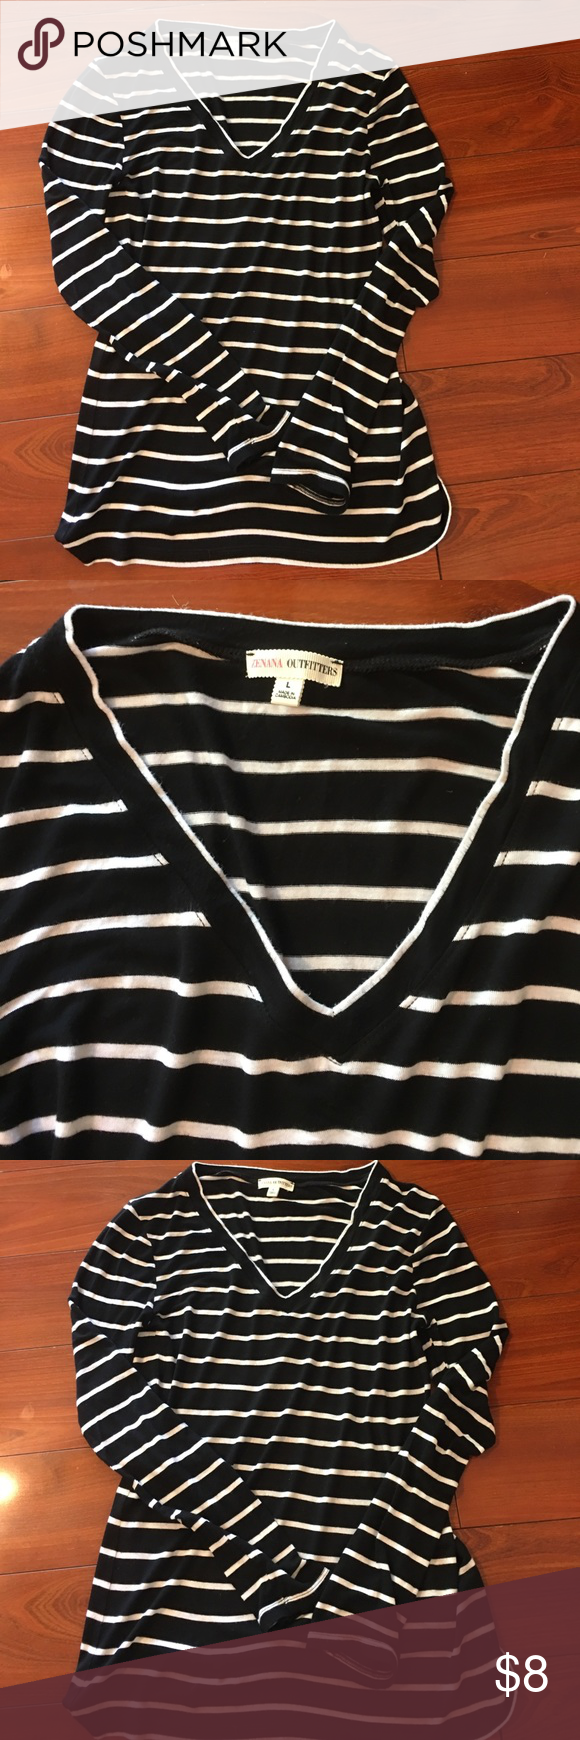 ZENAA OUTFITTERS long sleeve V-neck shirt Large ZENAA OUTFITTERS long sleeve V-neck shirt. Black & white striped. Fast shipping!! Zenana Outfitters Tops Tees - Long Sleeve